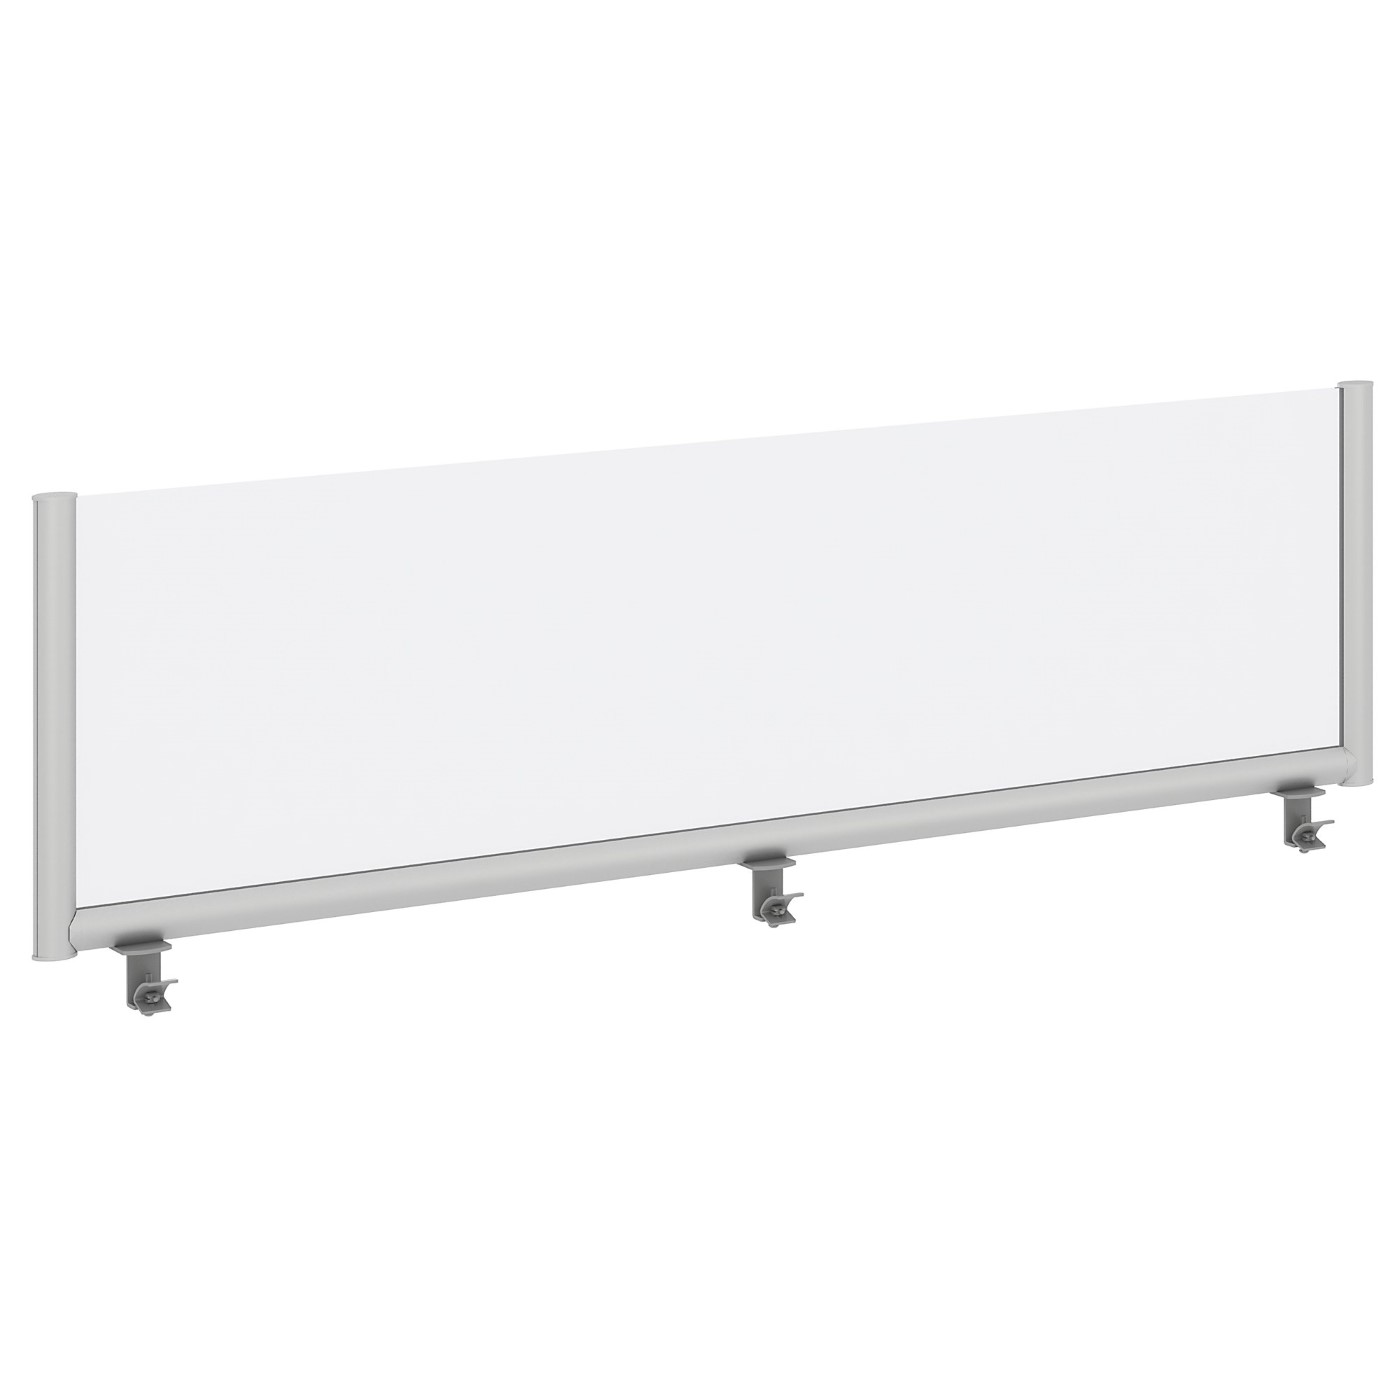 BUSH BUSINESS FURNITURE 66W DESK DIVIDER PRIVACY PANEL. FREE SHIPPING SALE DEDUCT 10% MORE ENTER '10percent' IN COUPON CODE BOX WHILE CHECKING OUT. ENDS 5-31-20.